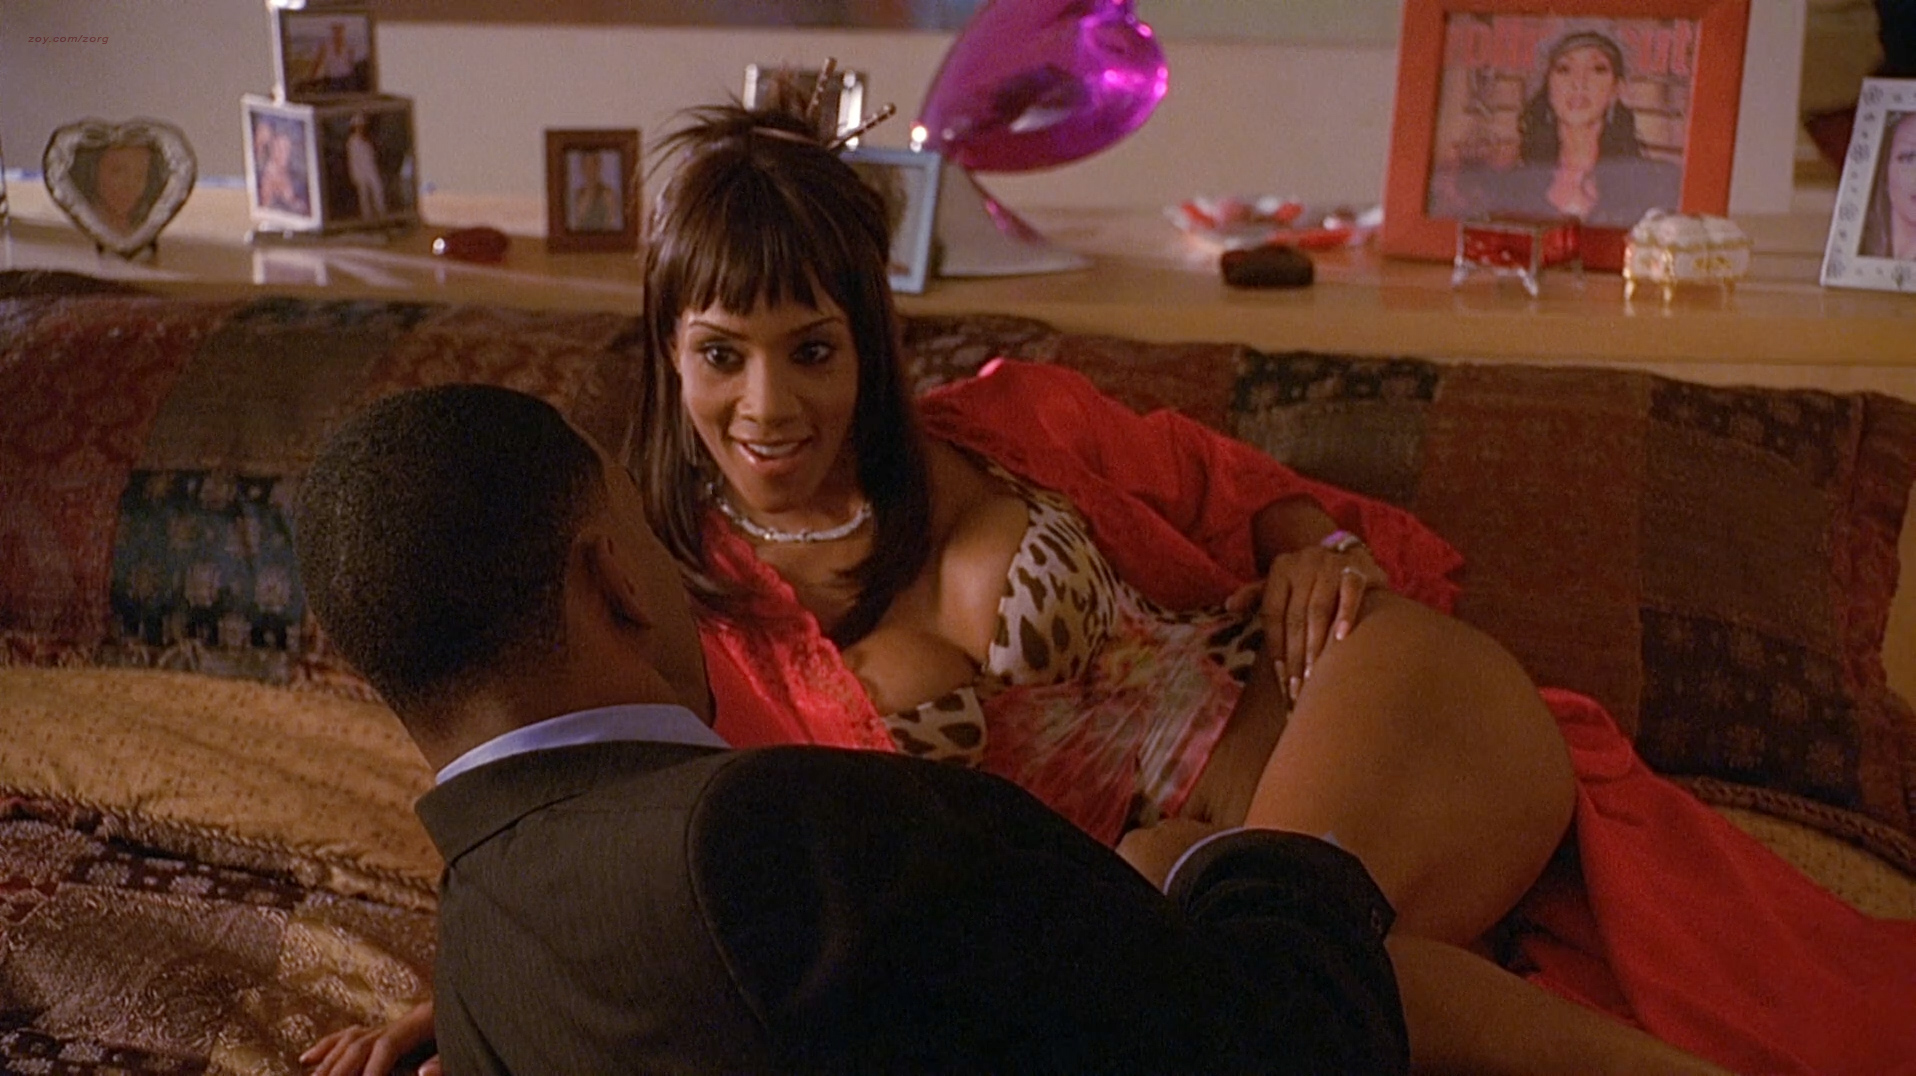 Vivica A. Fox hot in lingerie and Carmen Electra hot panties - Getting Played (2006) hd1080p Web-DL (7)